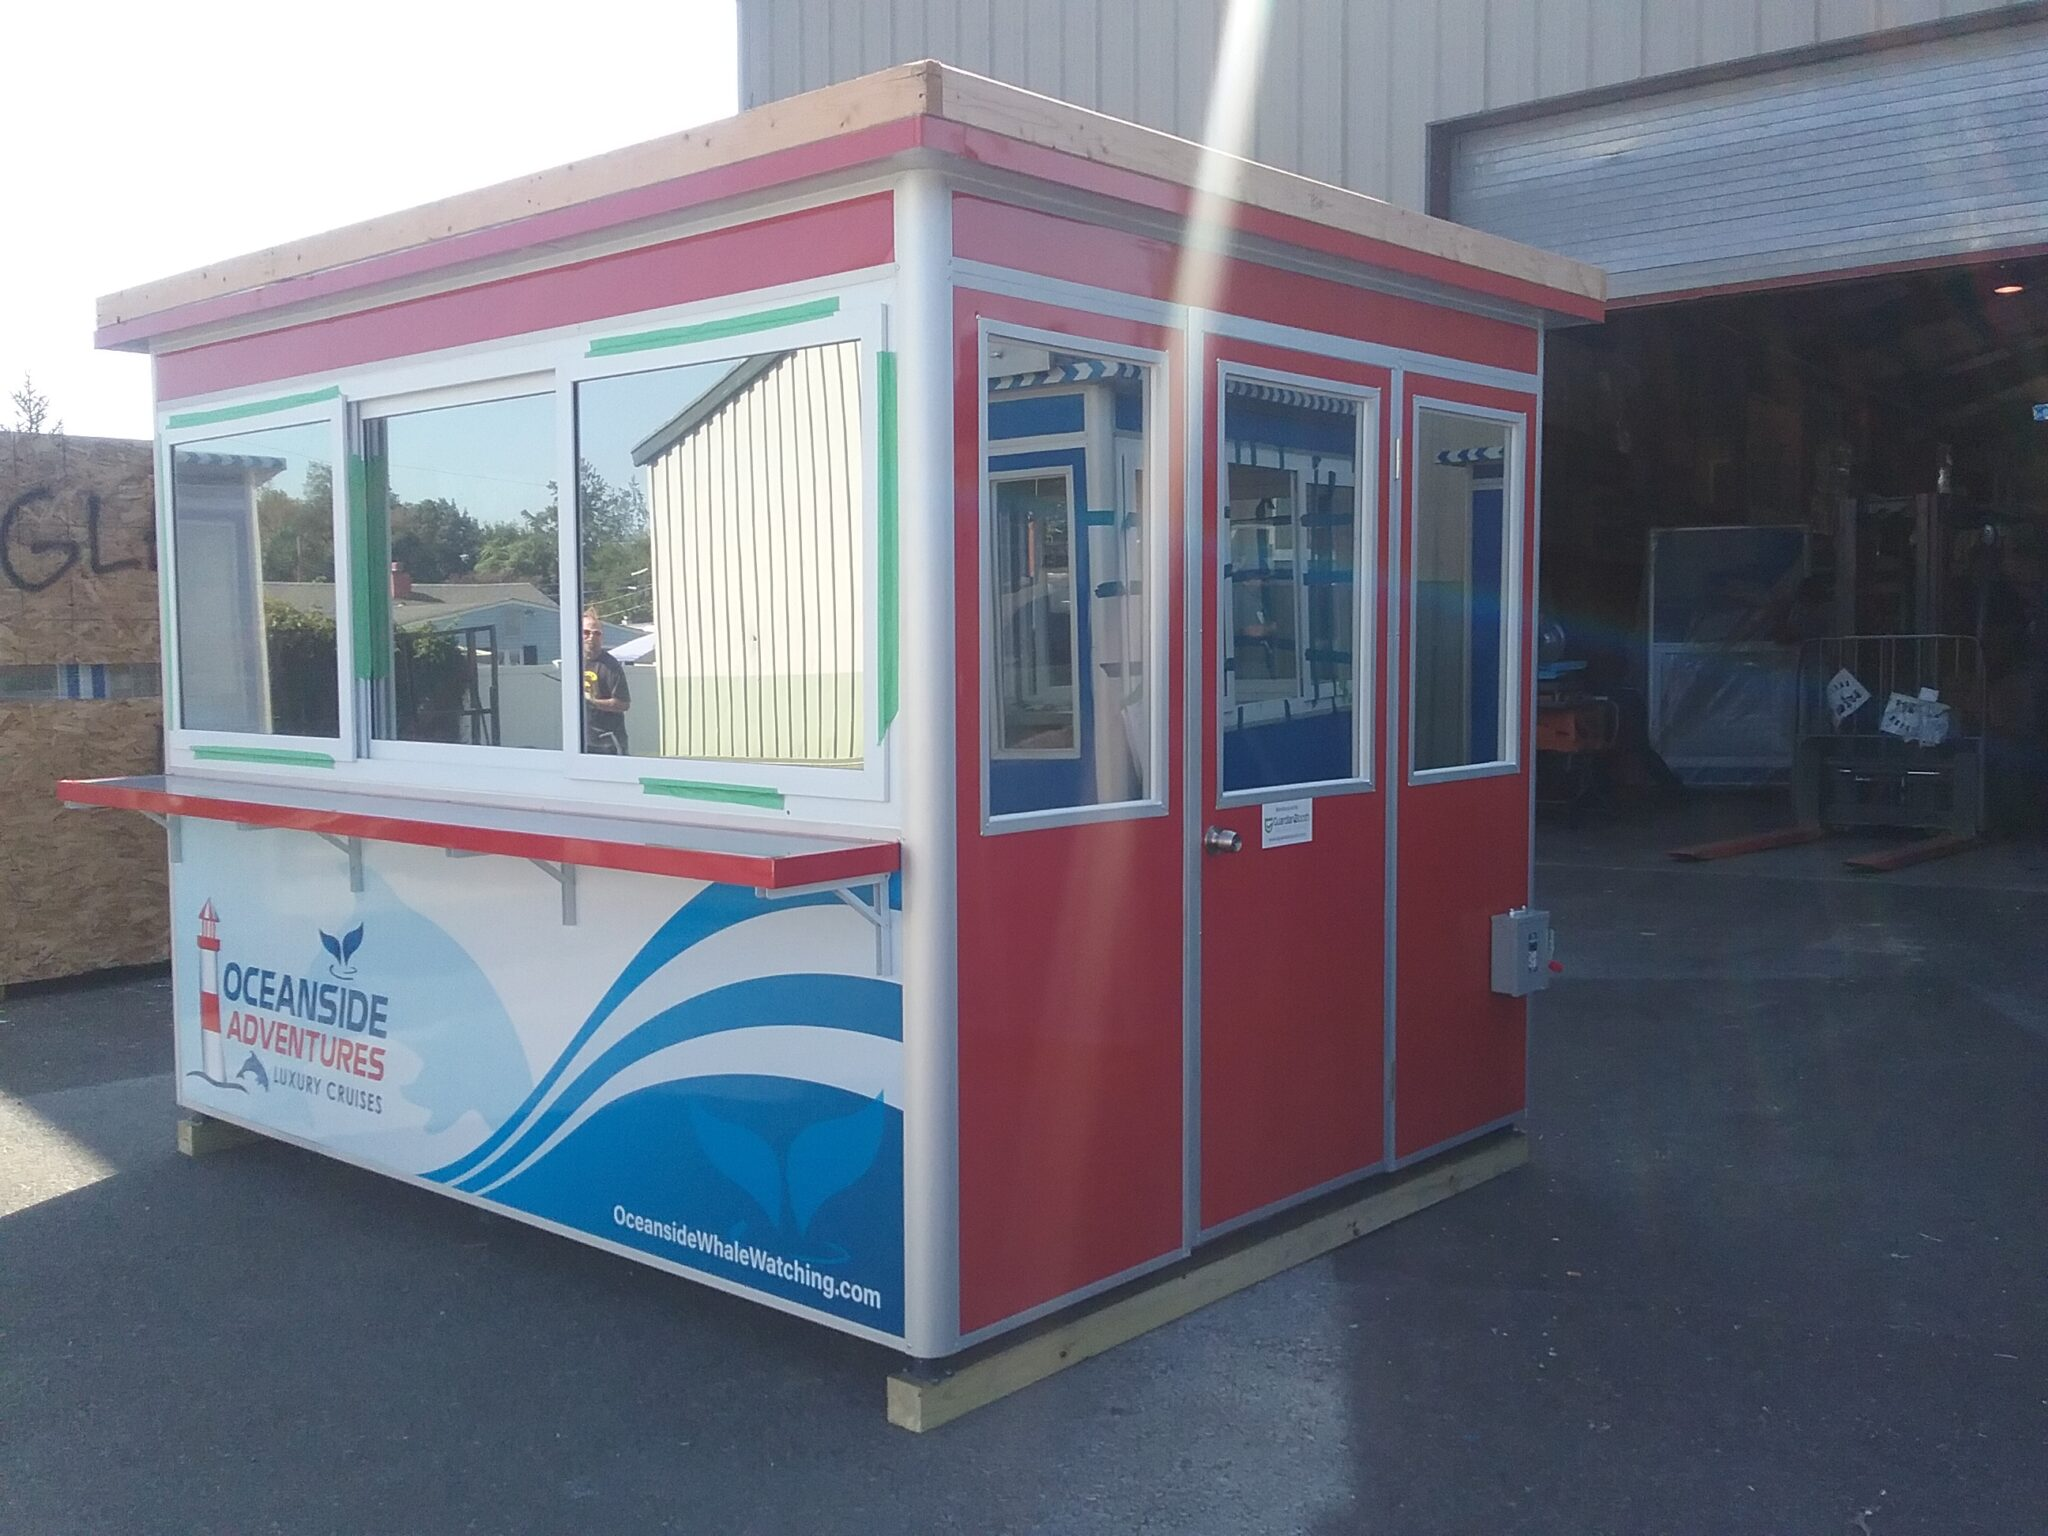 8x10 Ticket Booth in Oceanside, CA with Custom Graphics, Tinted Windows, Anchoring Brackets, and Ethernet and Phone Line